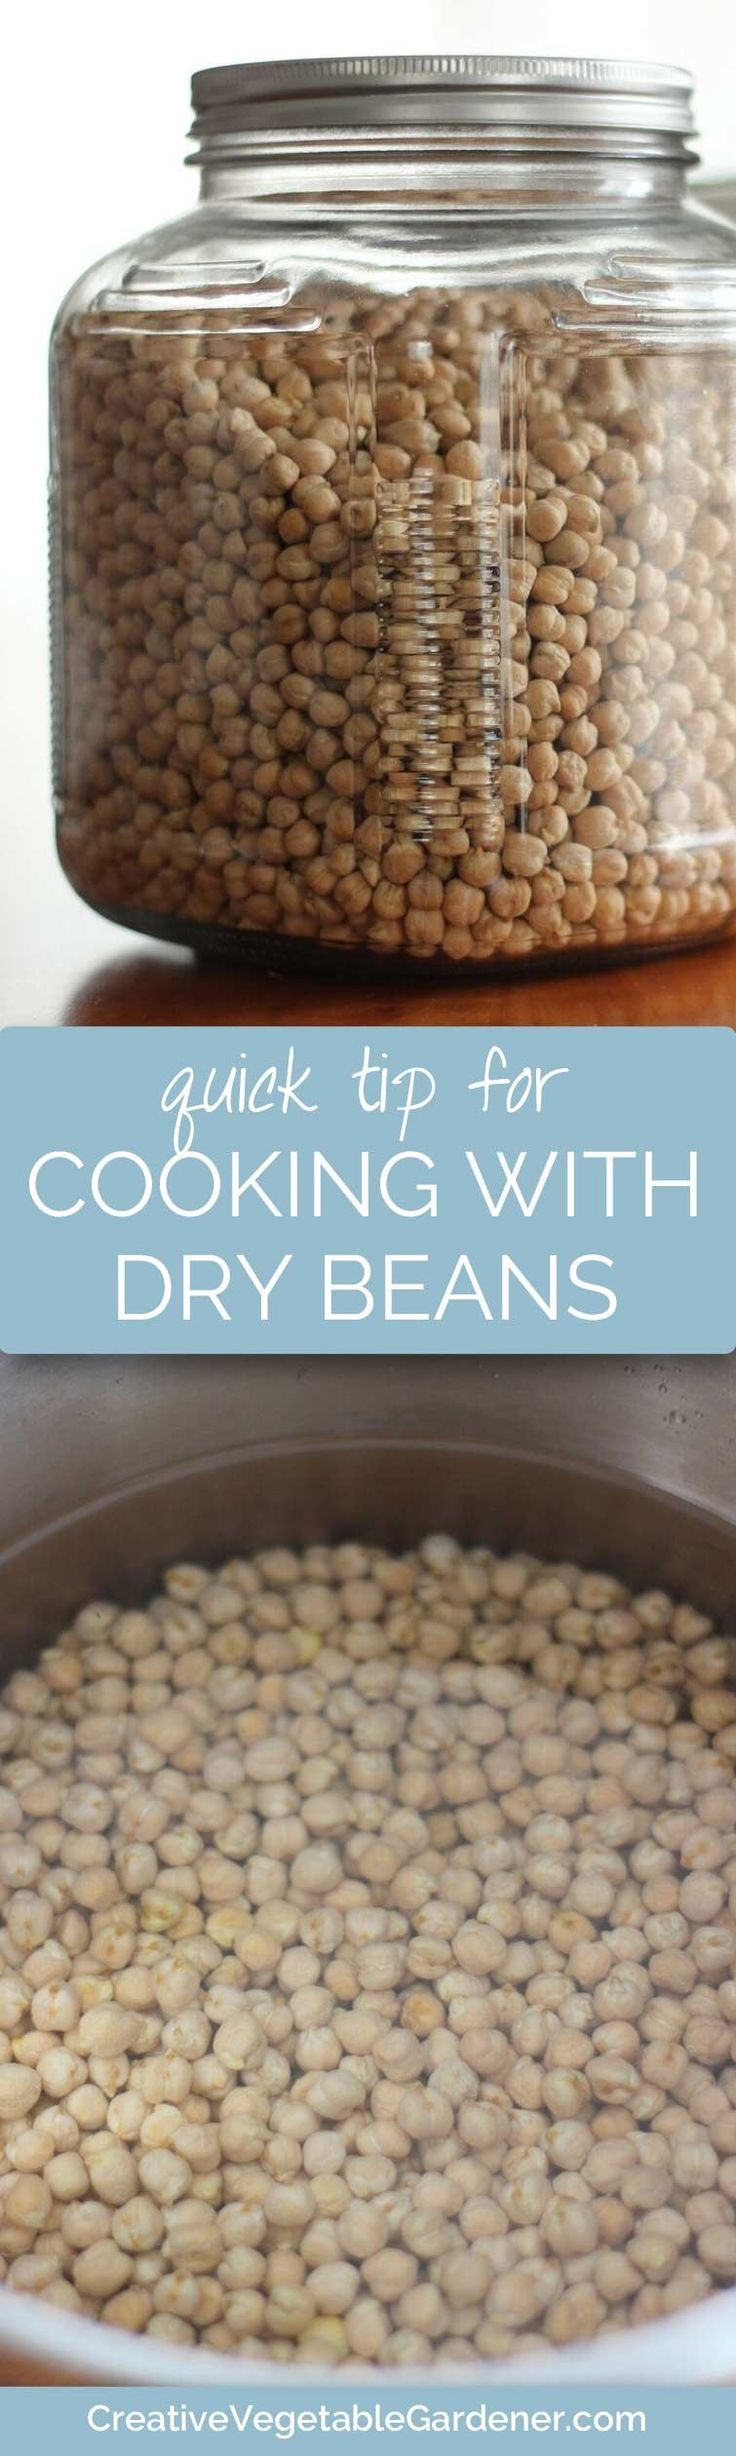 377 best cooking tips images on Pinterest   Kitchens, Cooking tips ...